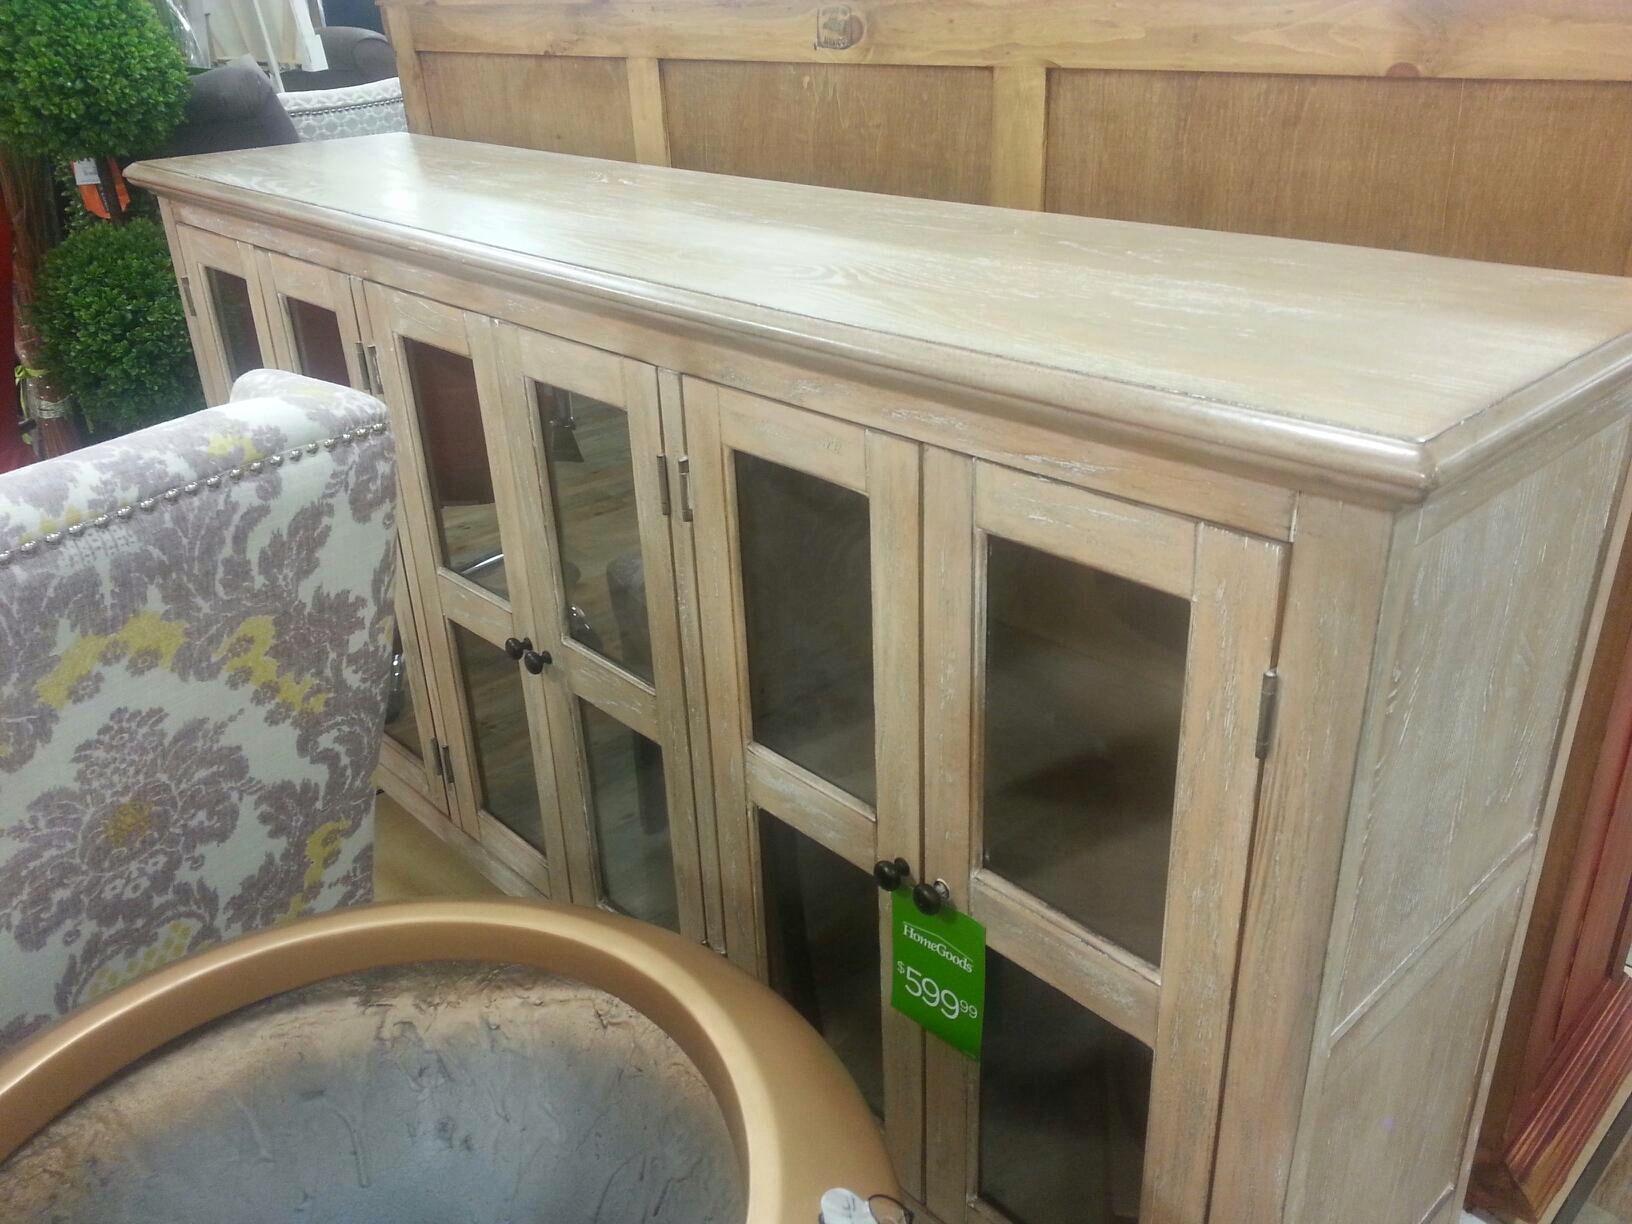 Filename  d8f37ce95a2ff7c04f44ef78d6201b79 jpg. Home Goods Furniture Images   Reverse Search